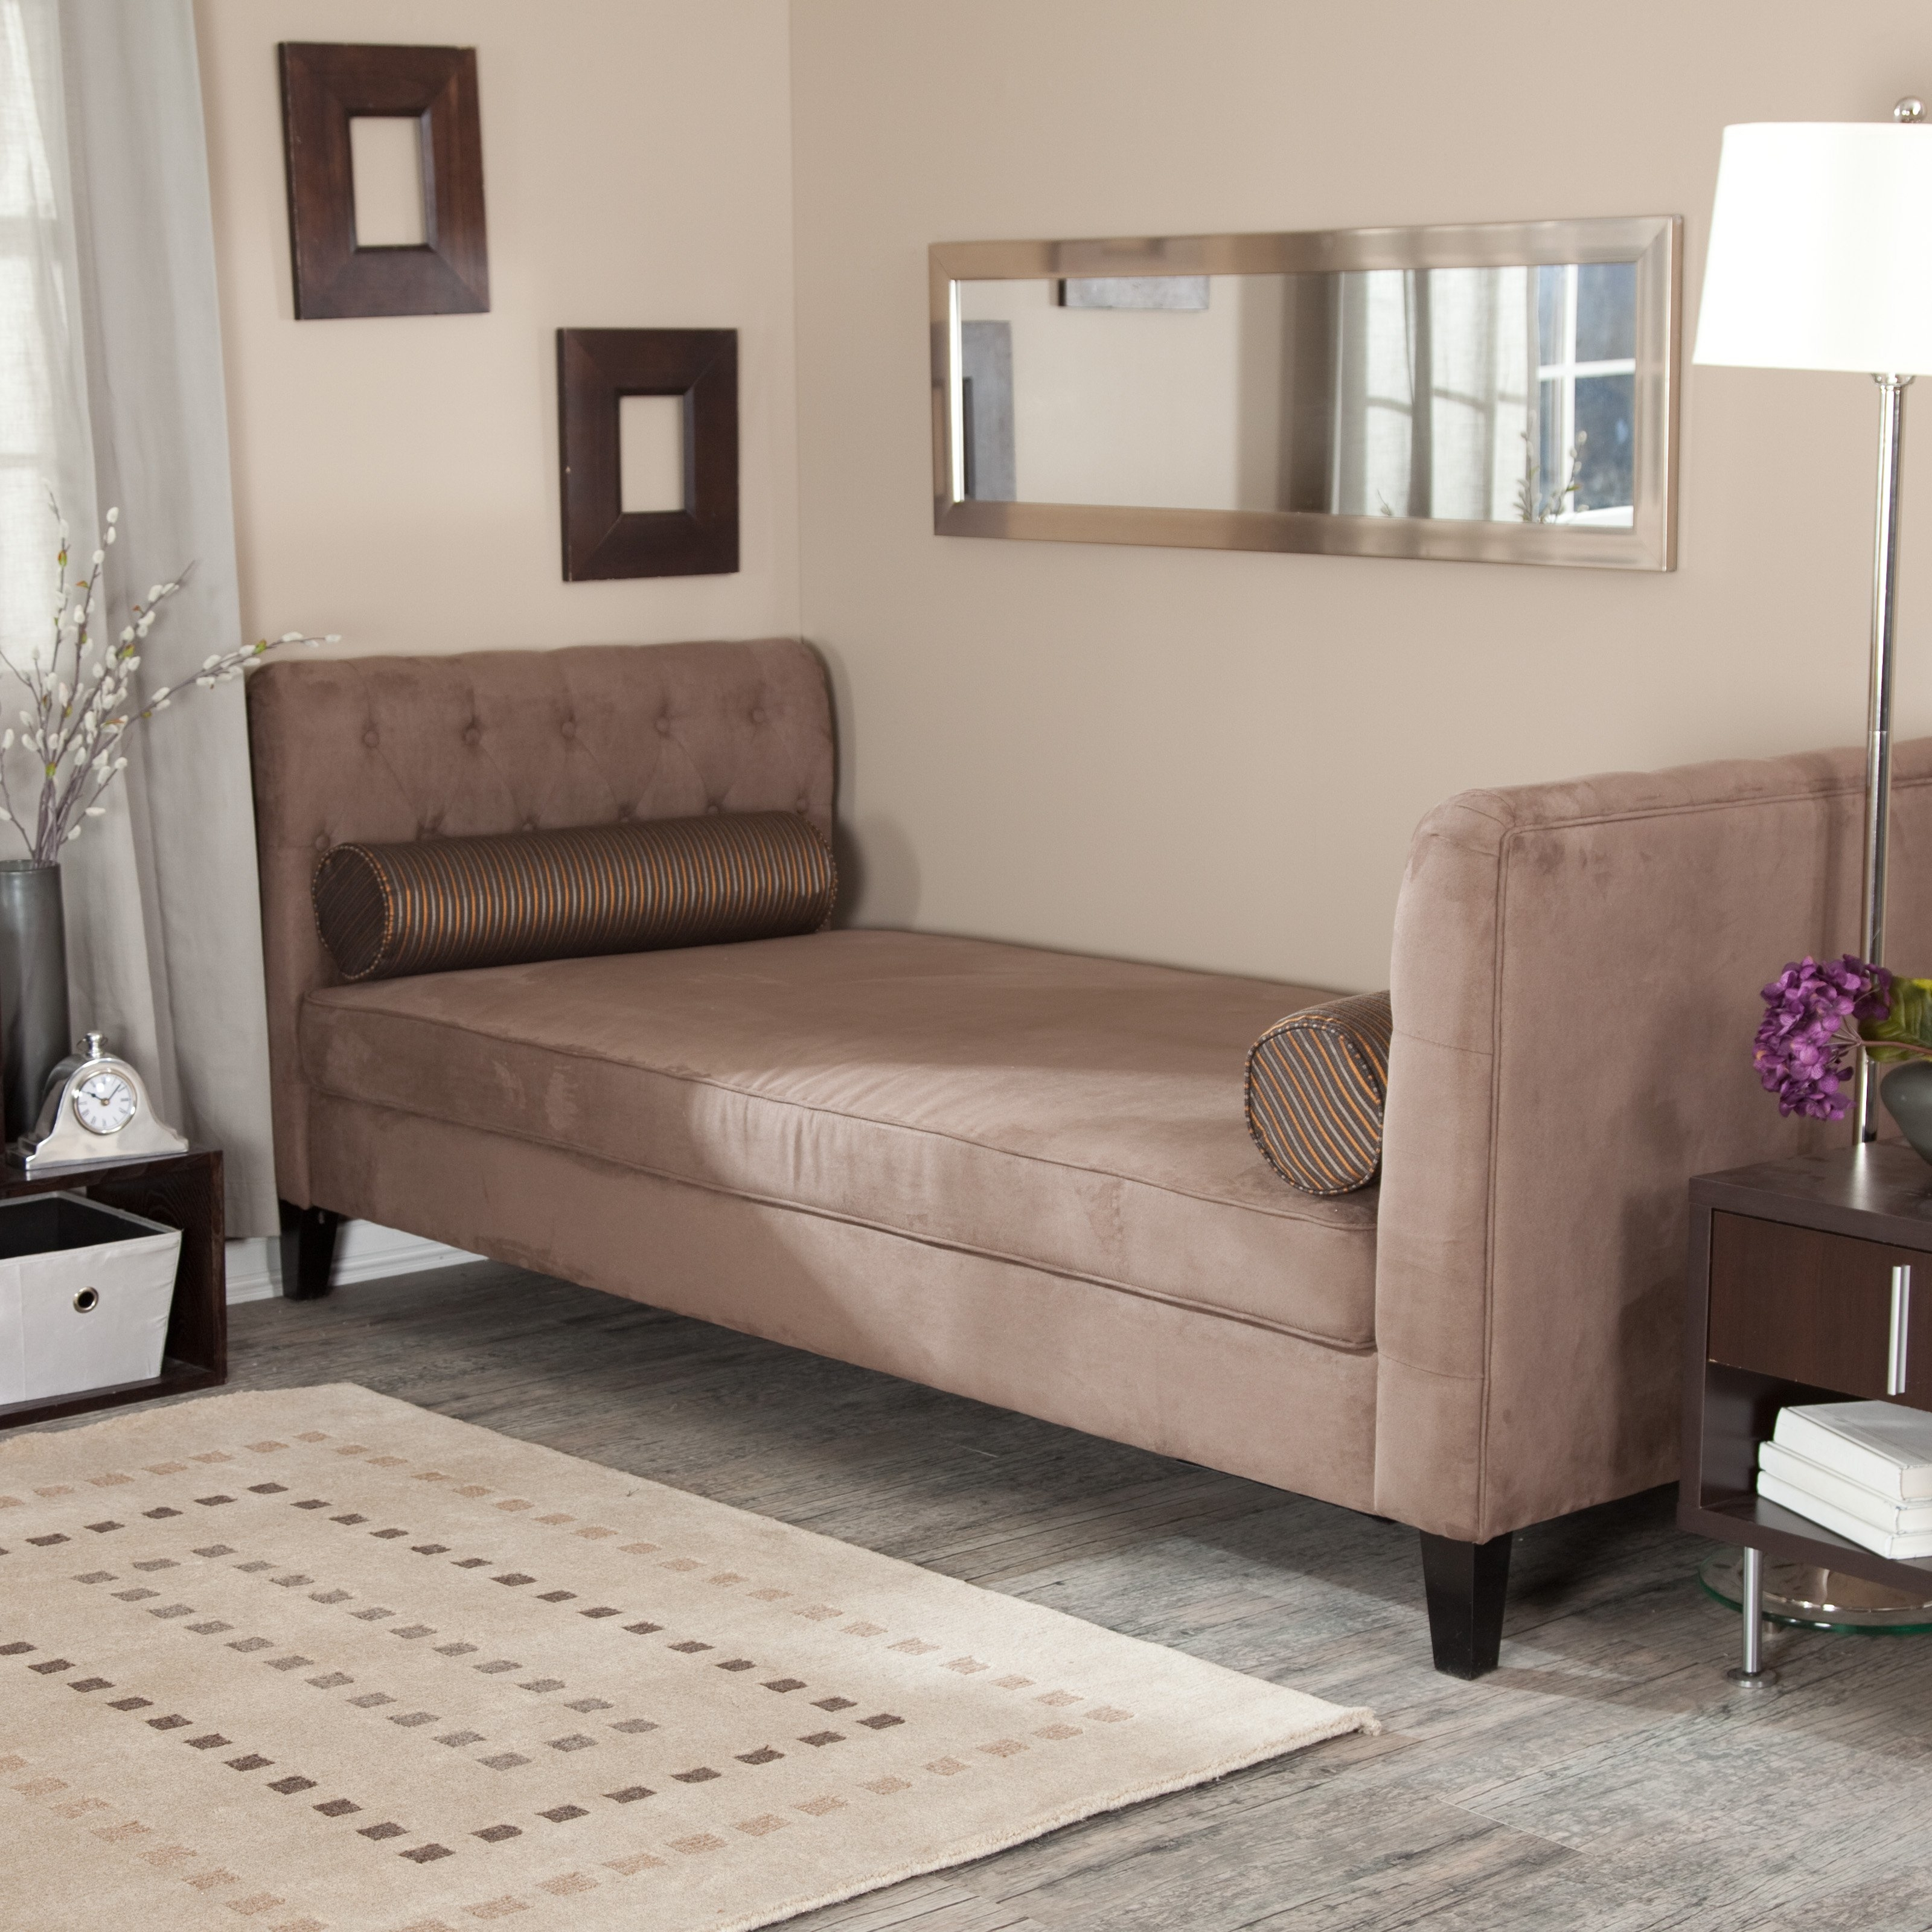 Astonishing Backless Daybed With Trundle Images Inspiration With Regard To Backless Chaise Sofa (Image 1 of 15)